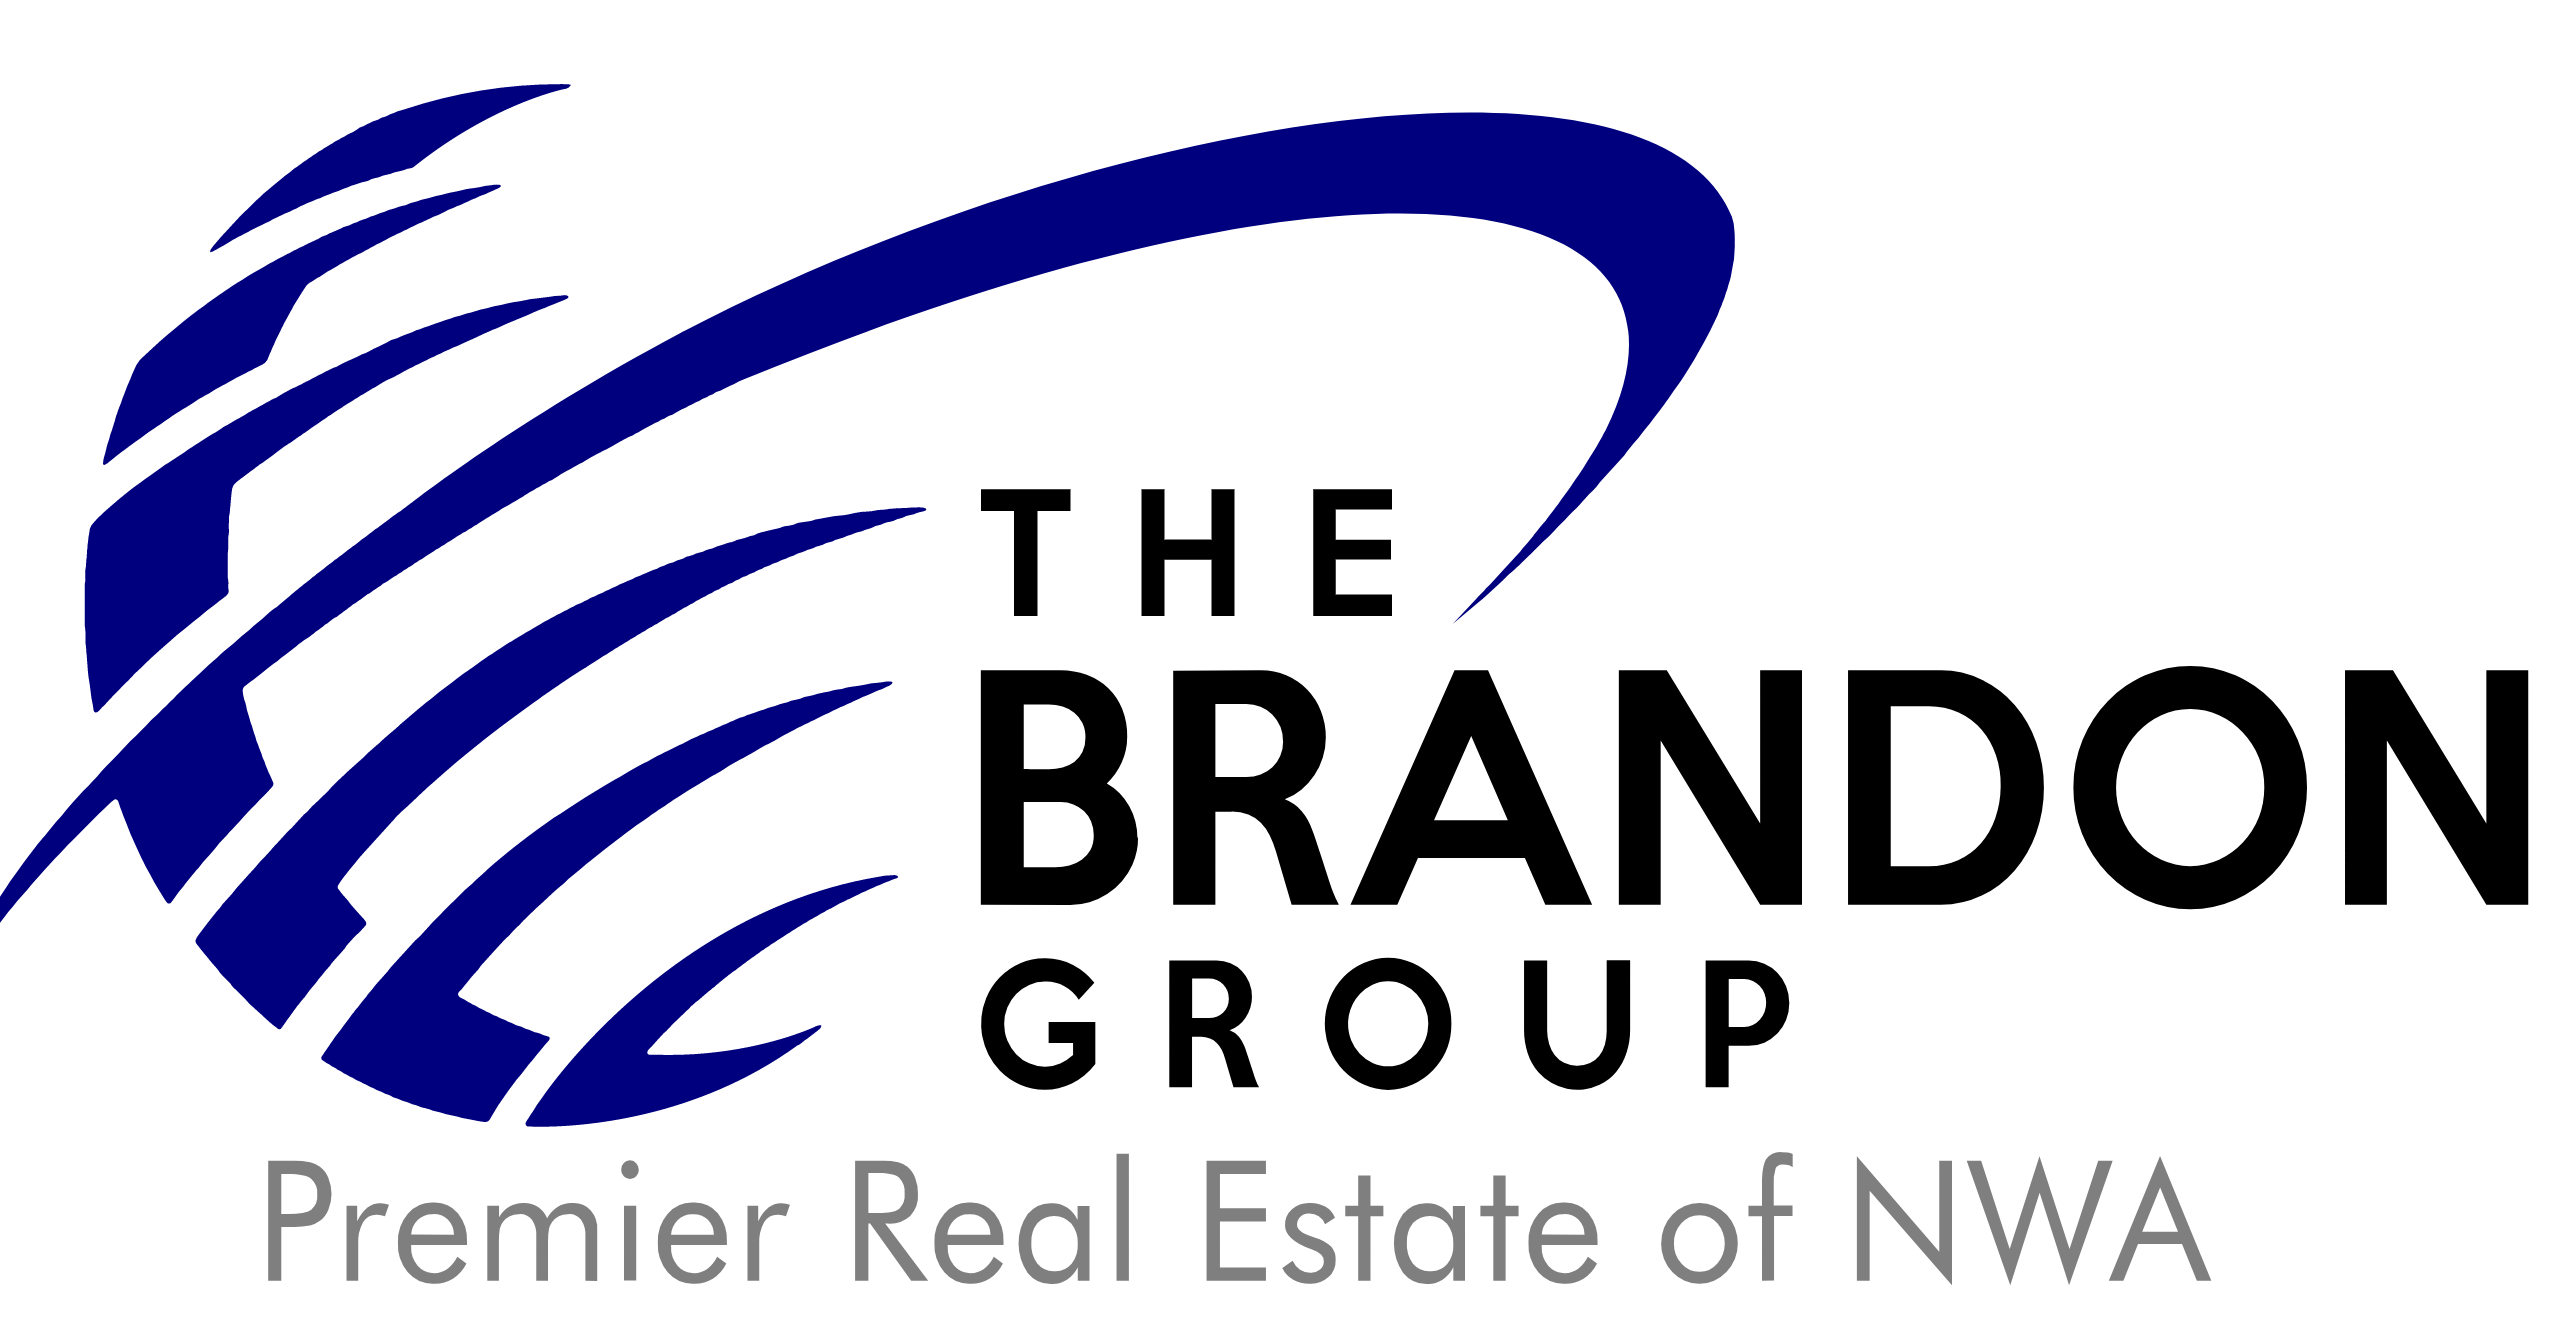 Arkansas Real Estate Company The Brandon Group Announces Explosive Growth And Hires Seven New Agents To Cope With The Demand